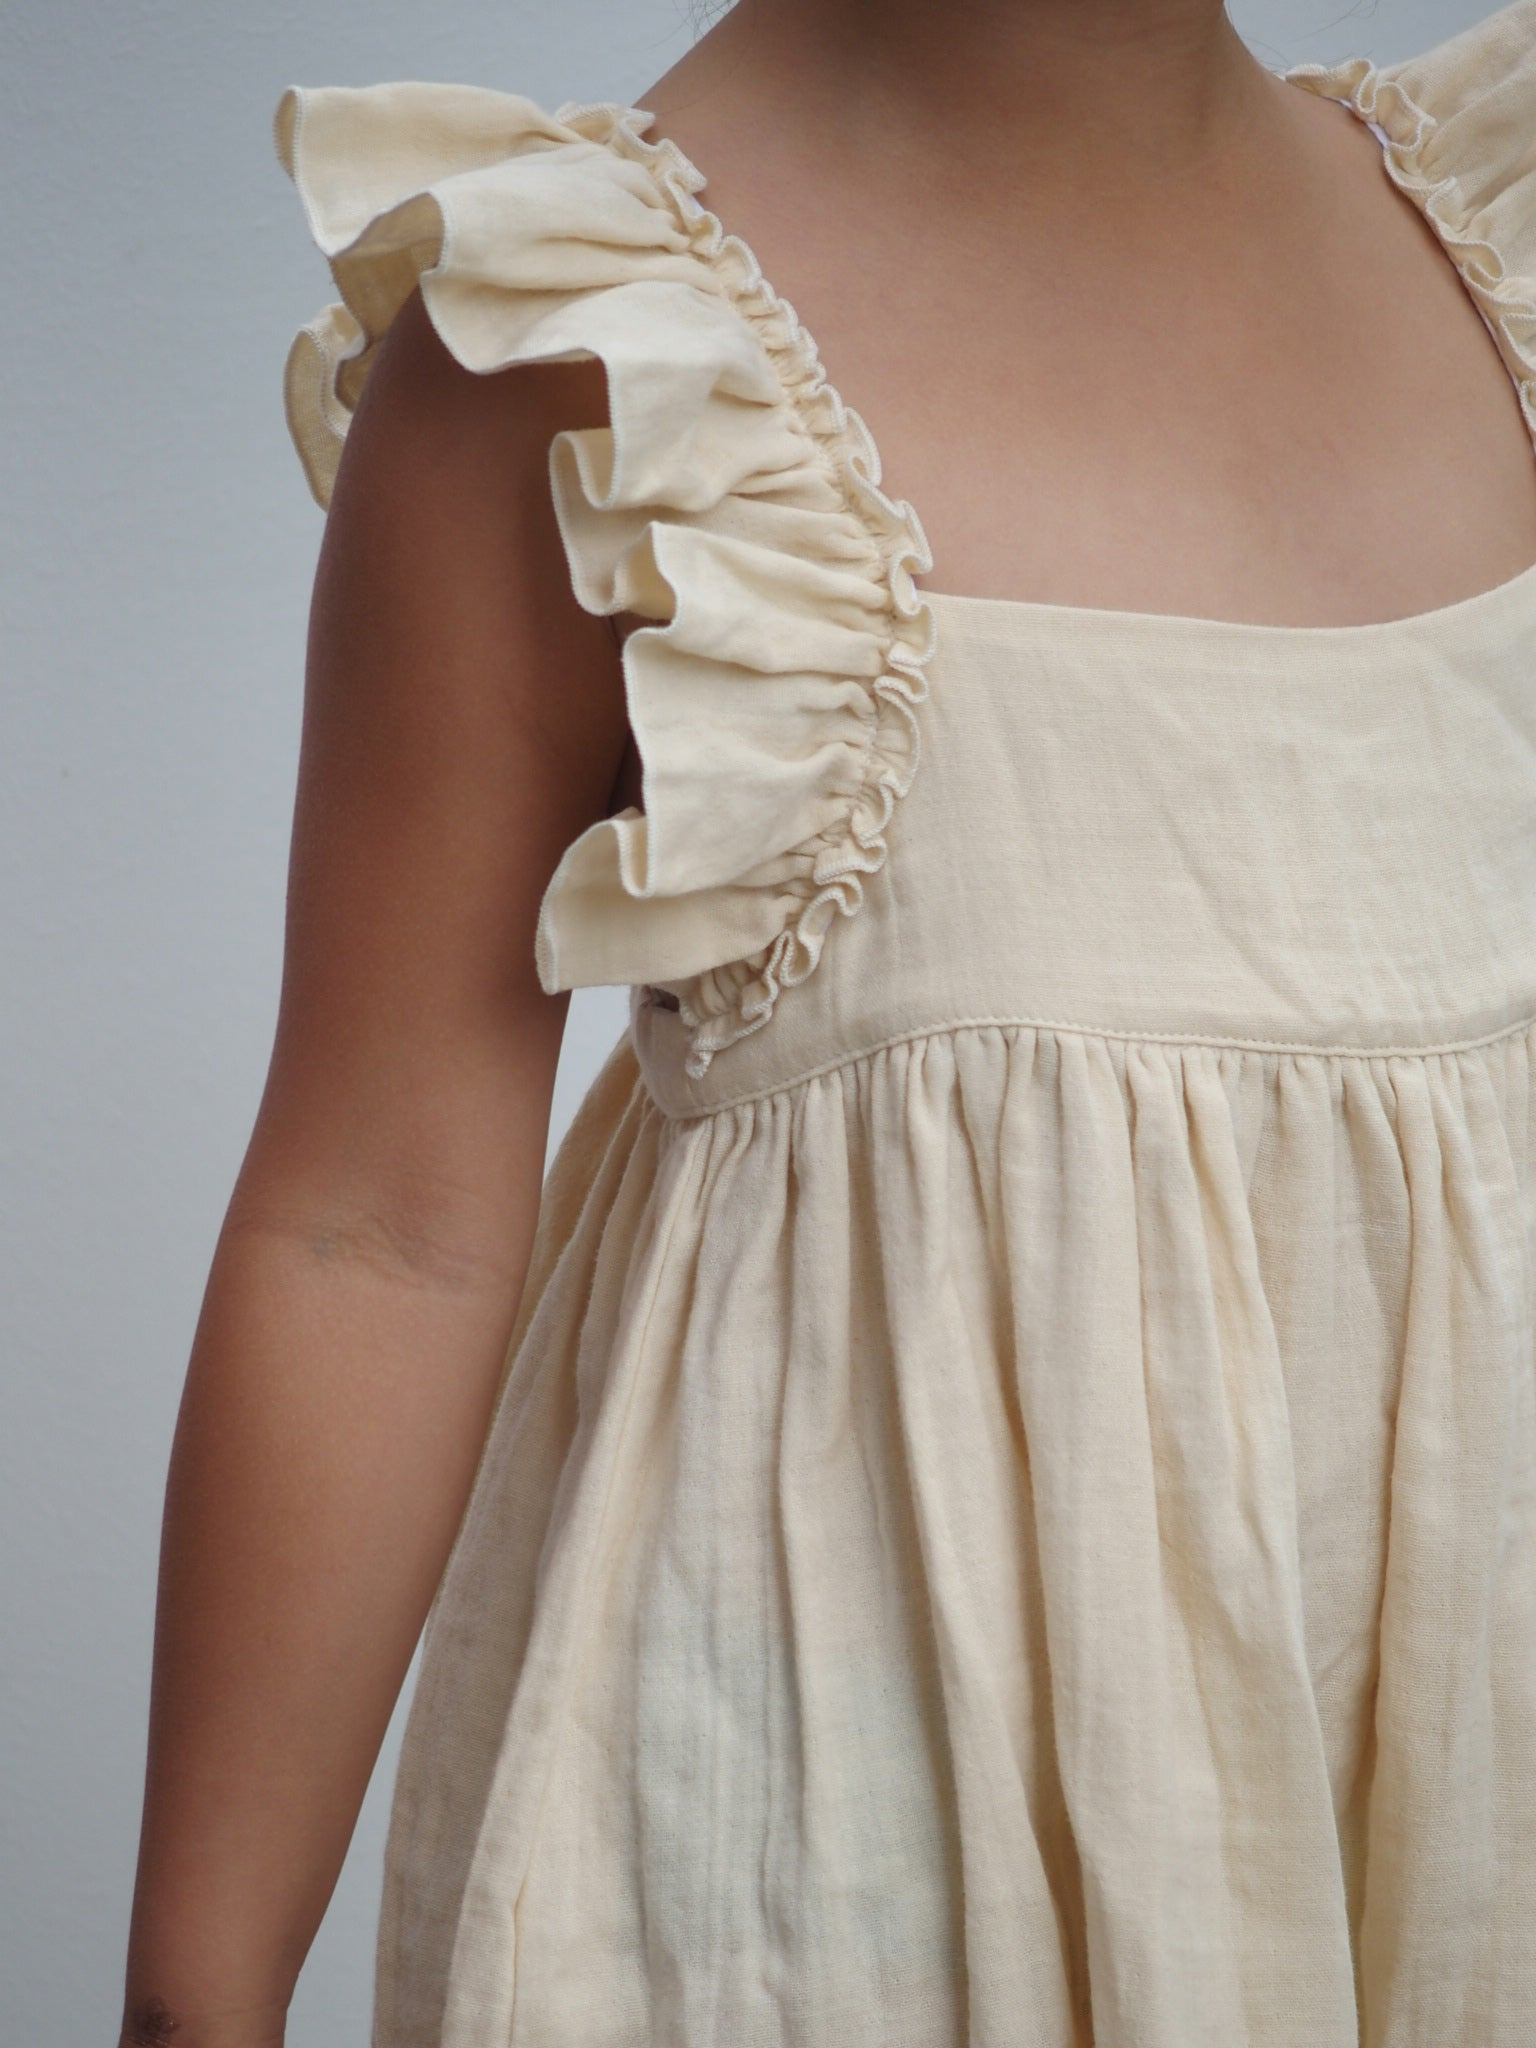 Liilu Pinafore Dress, detail